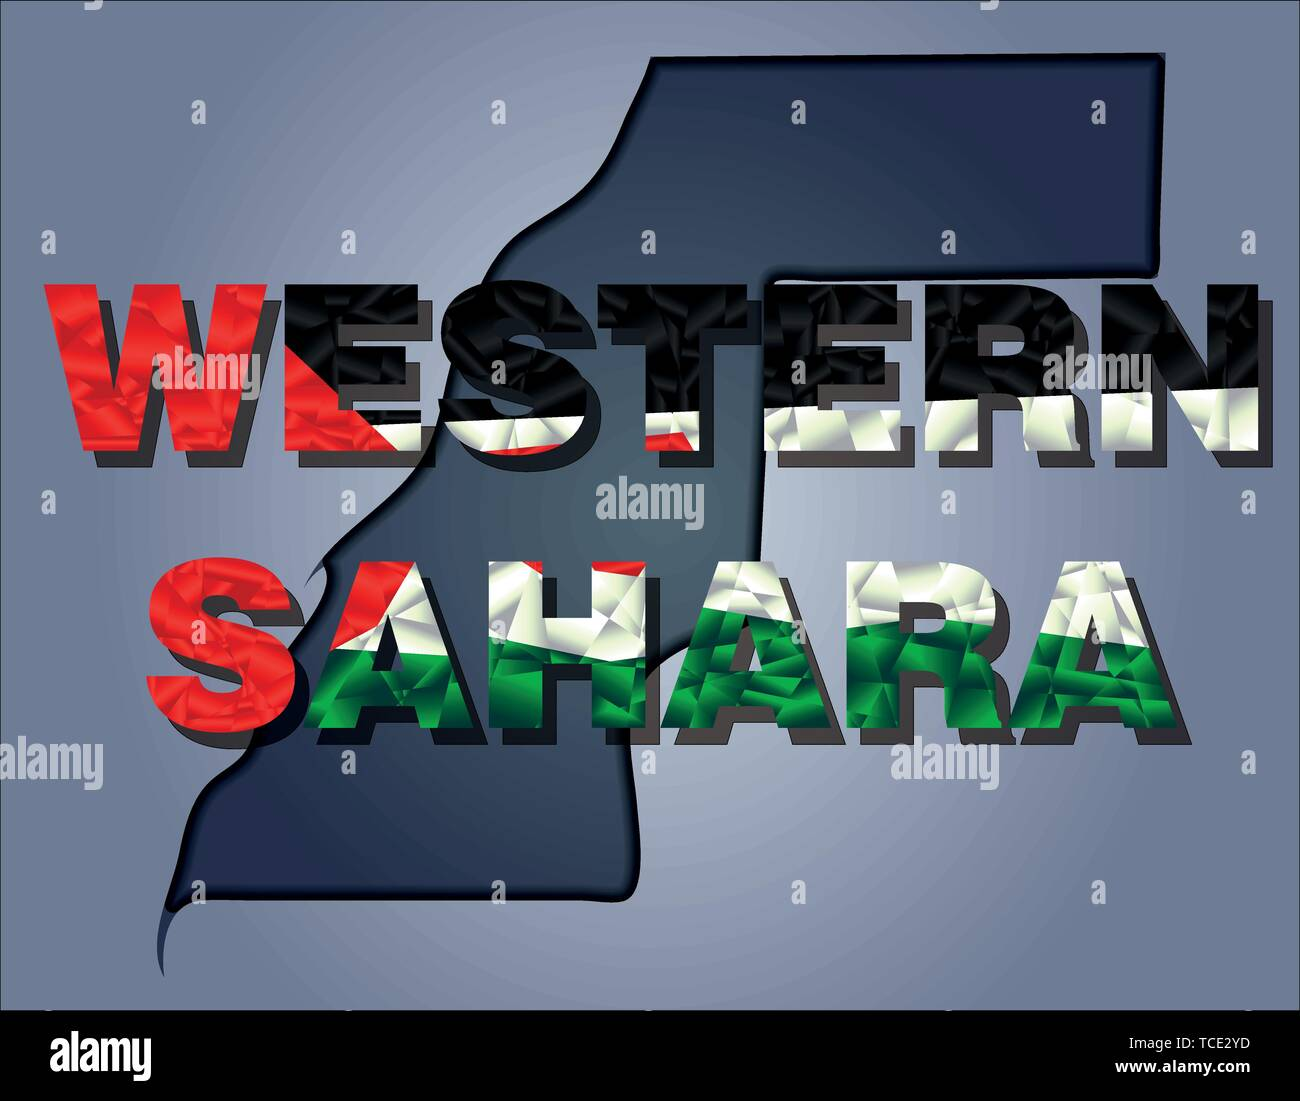 The contours of territory of Western Sahara and Western Sahara word in colours of the national flag, red, white, black and green. Africa continent - Stock Image